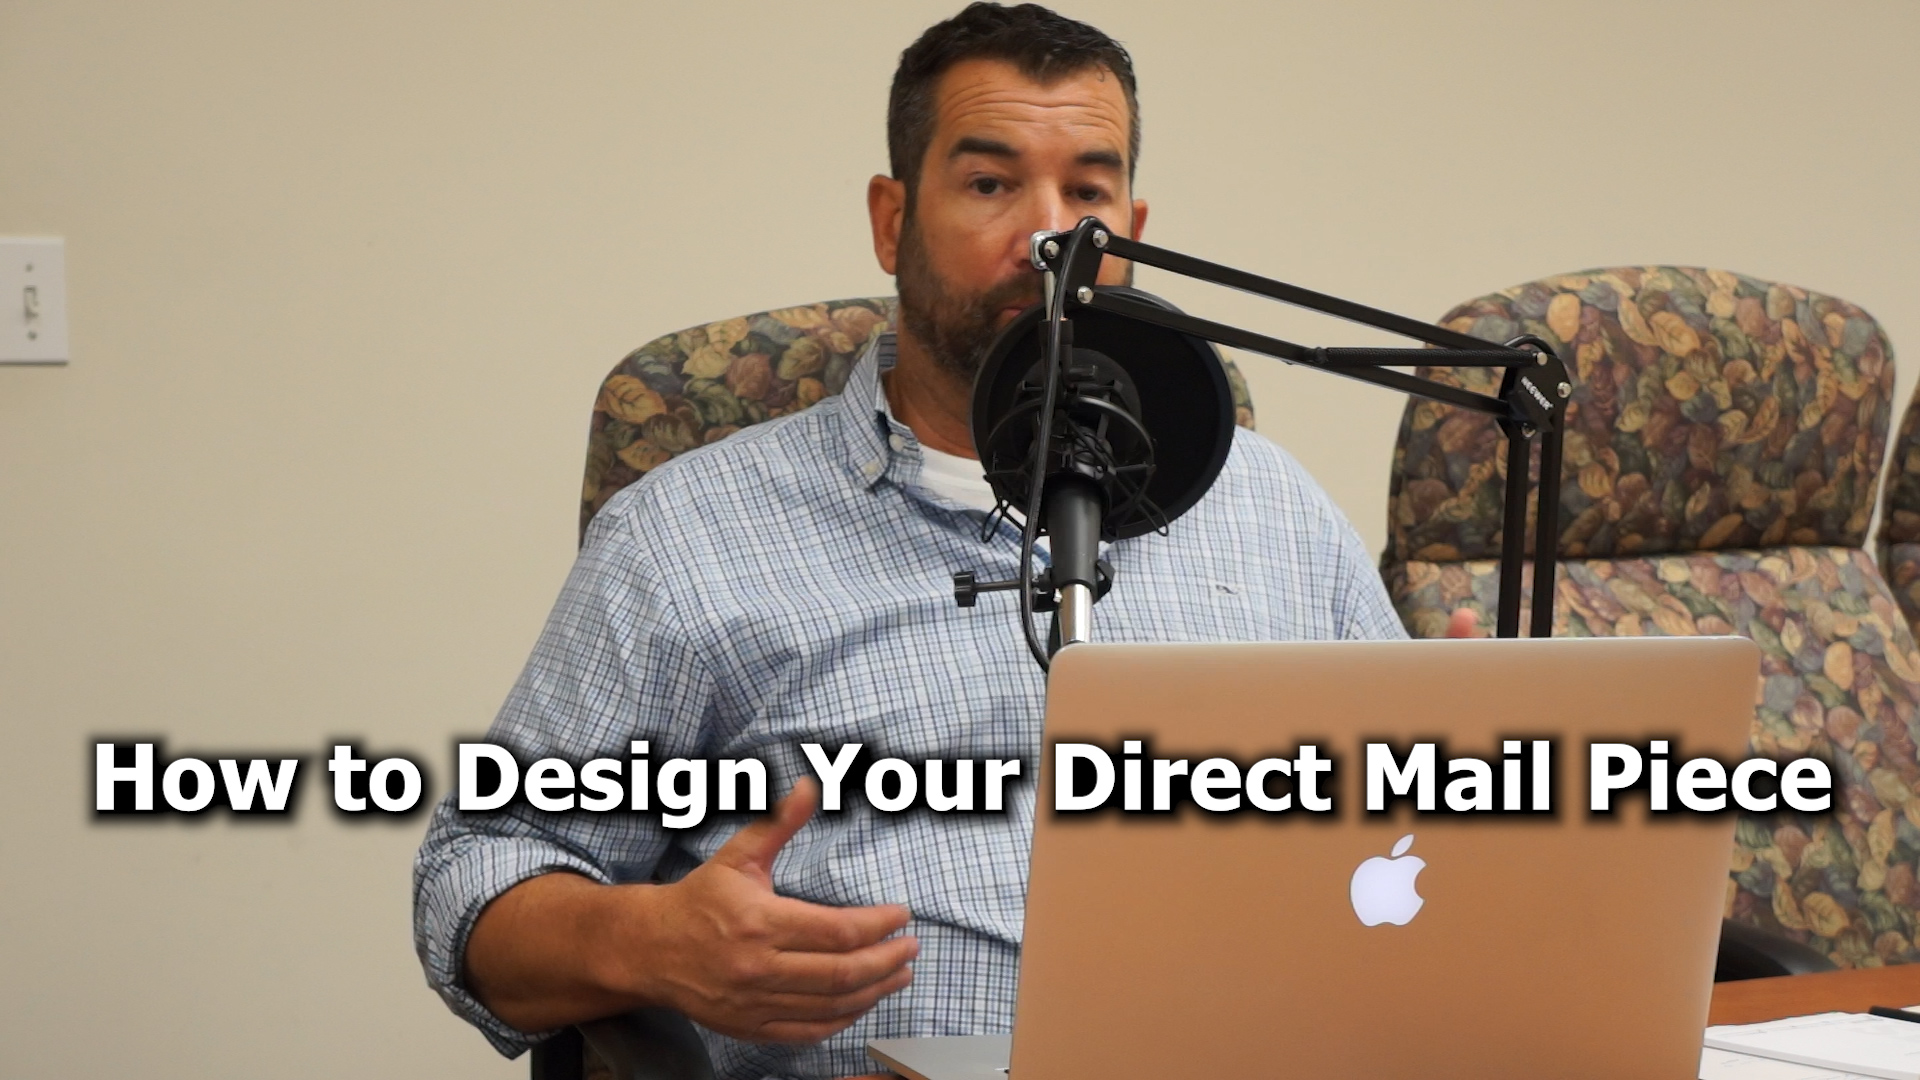 Direct Mail Still Works - The Messengers Podcast